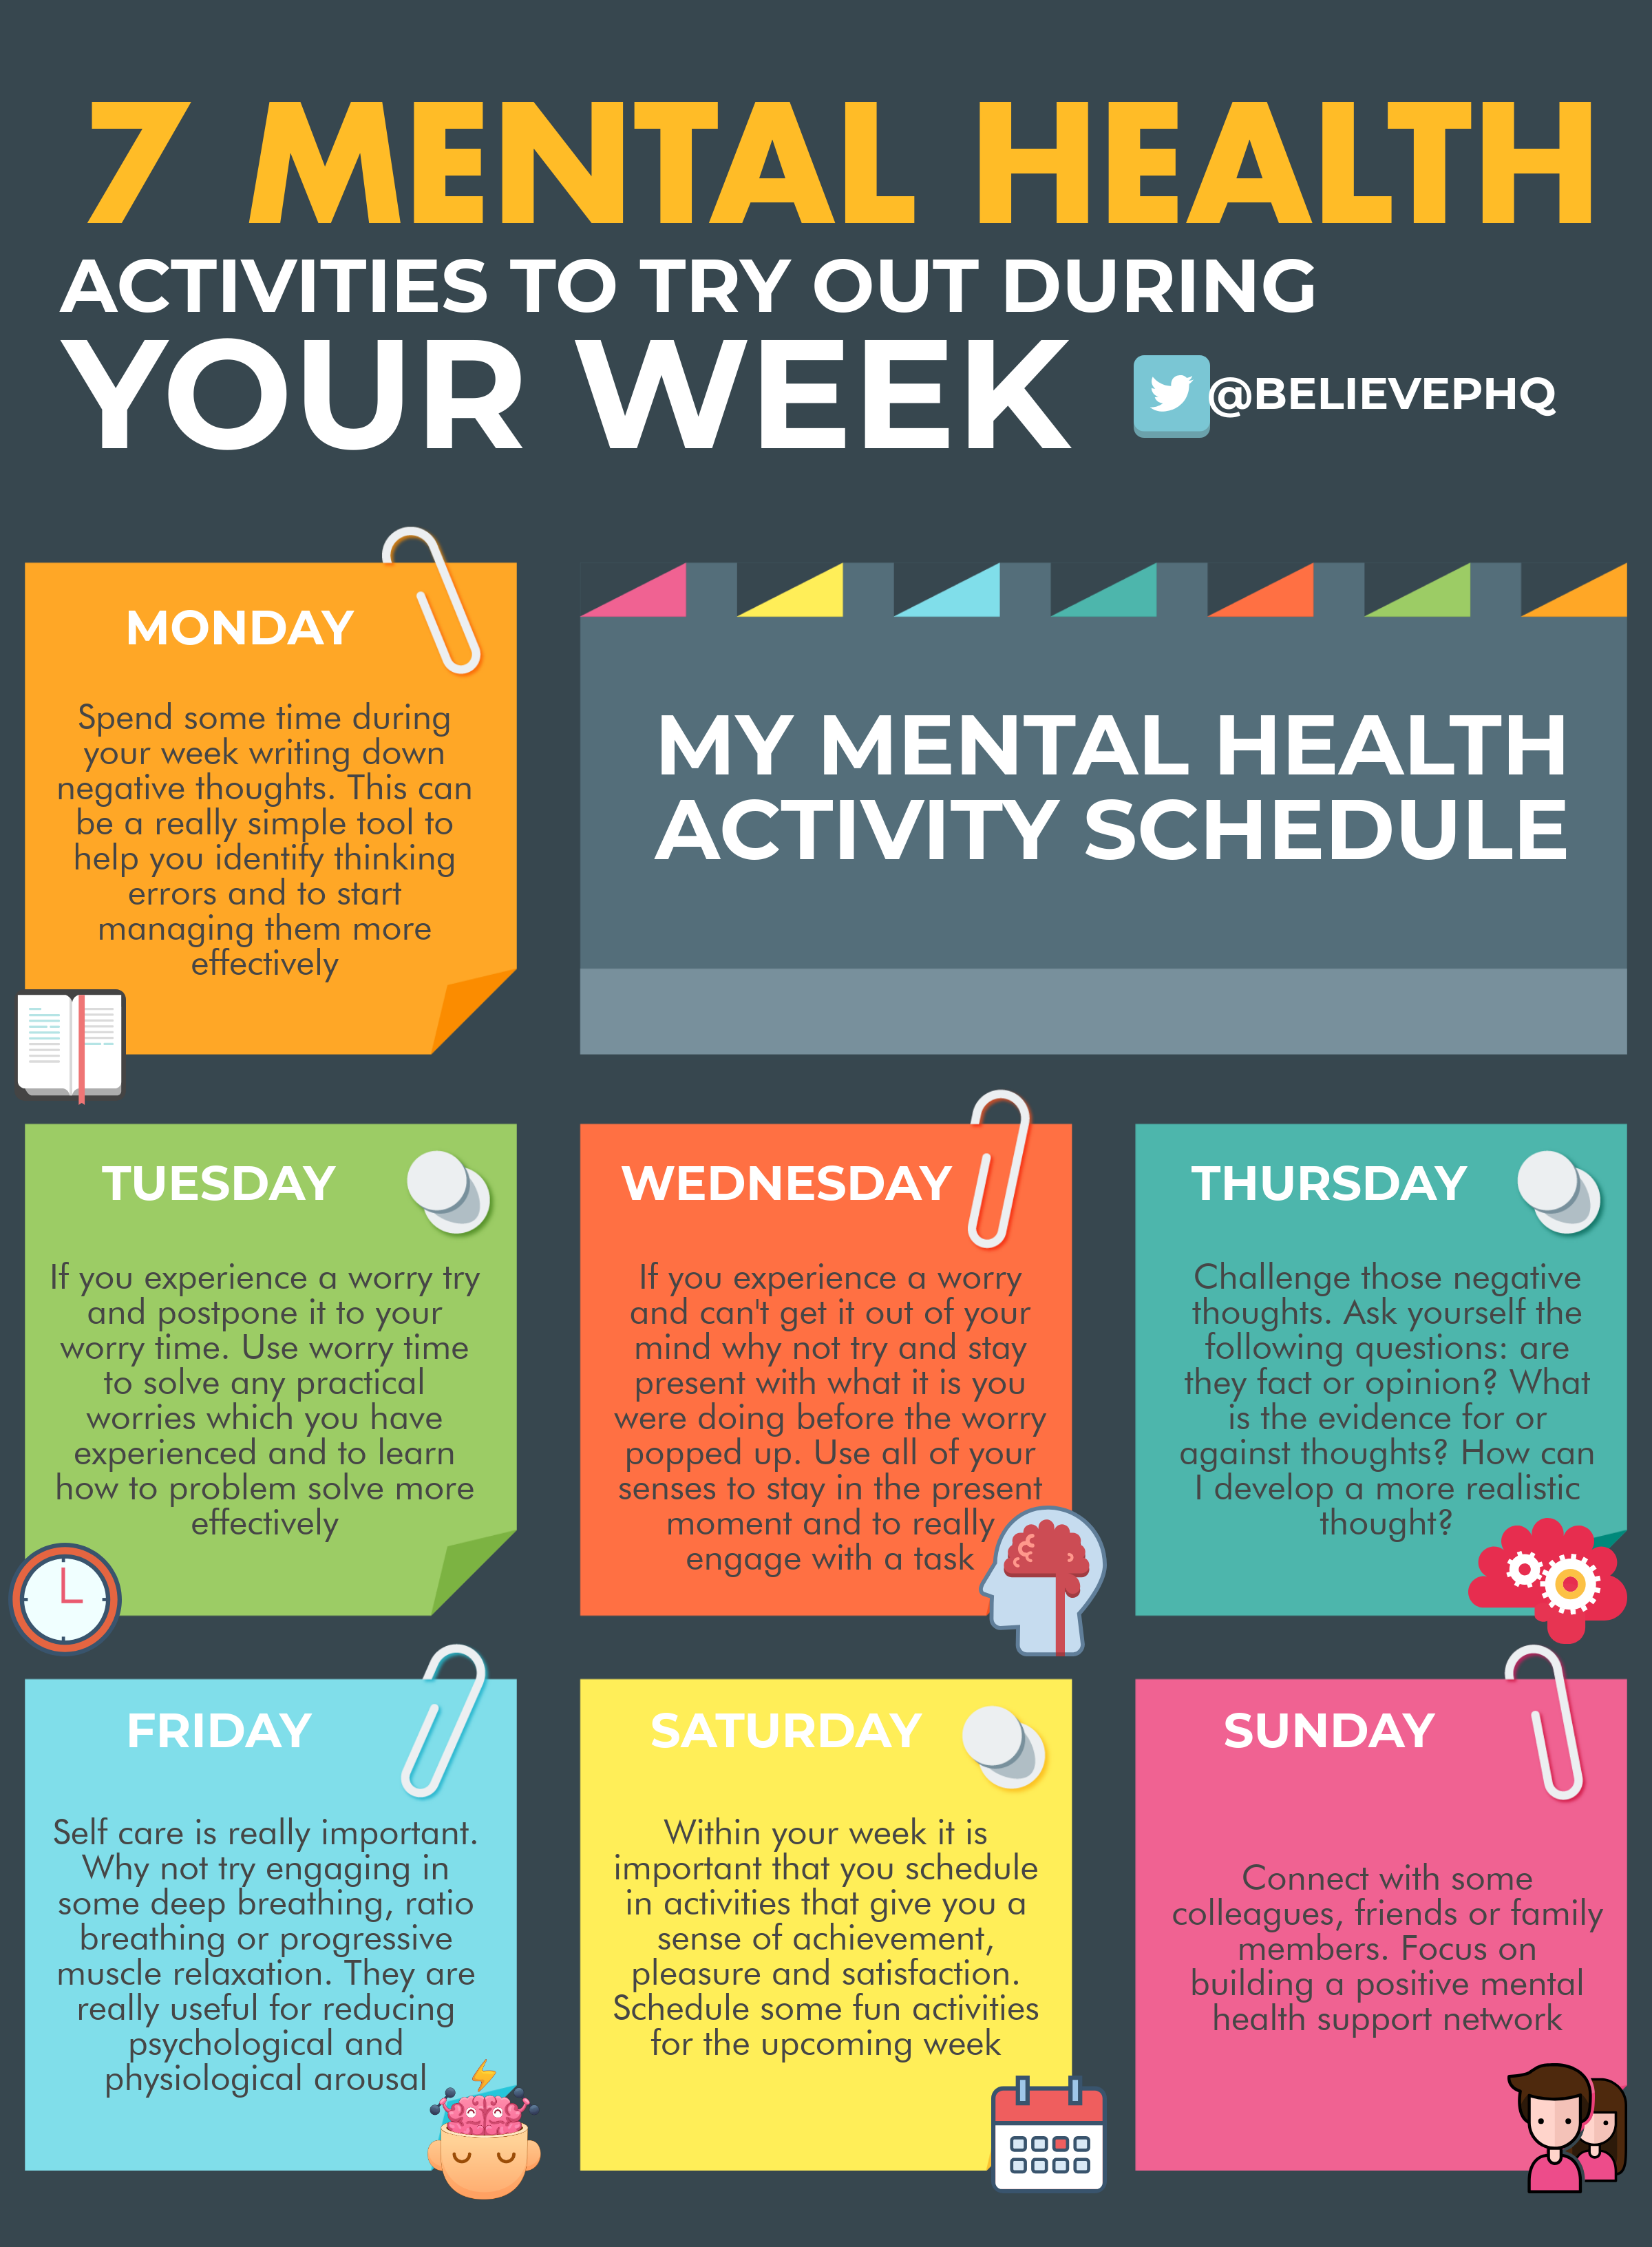 7 mental health activities to try out during the week ...